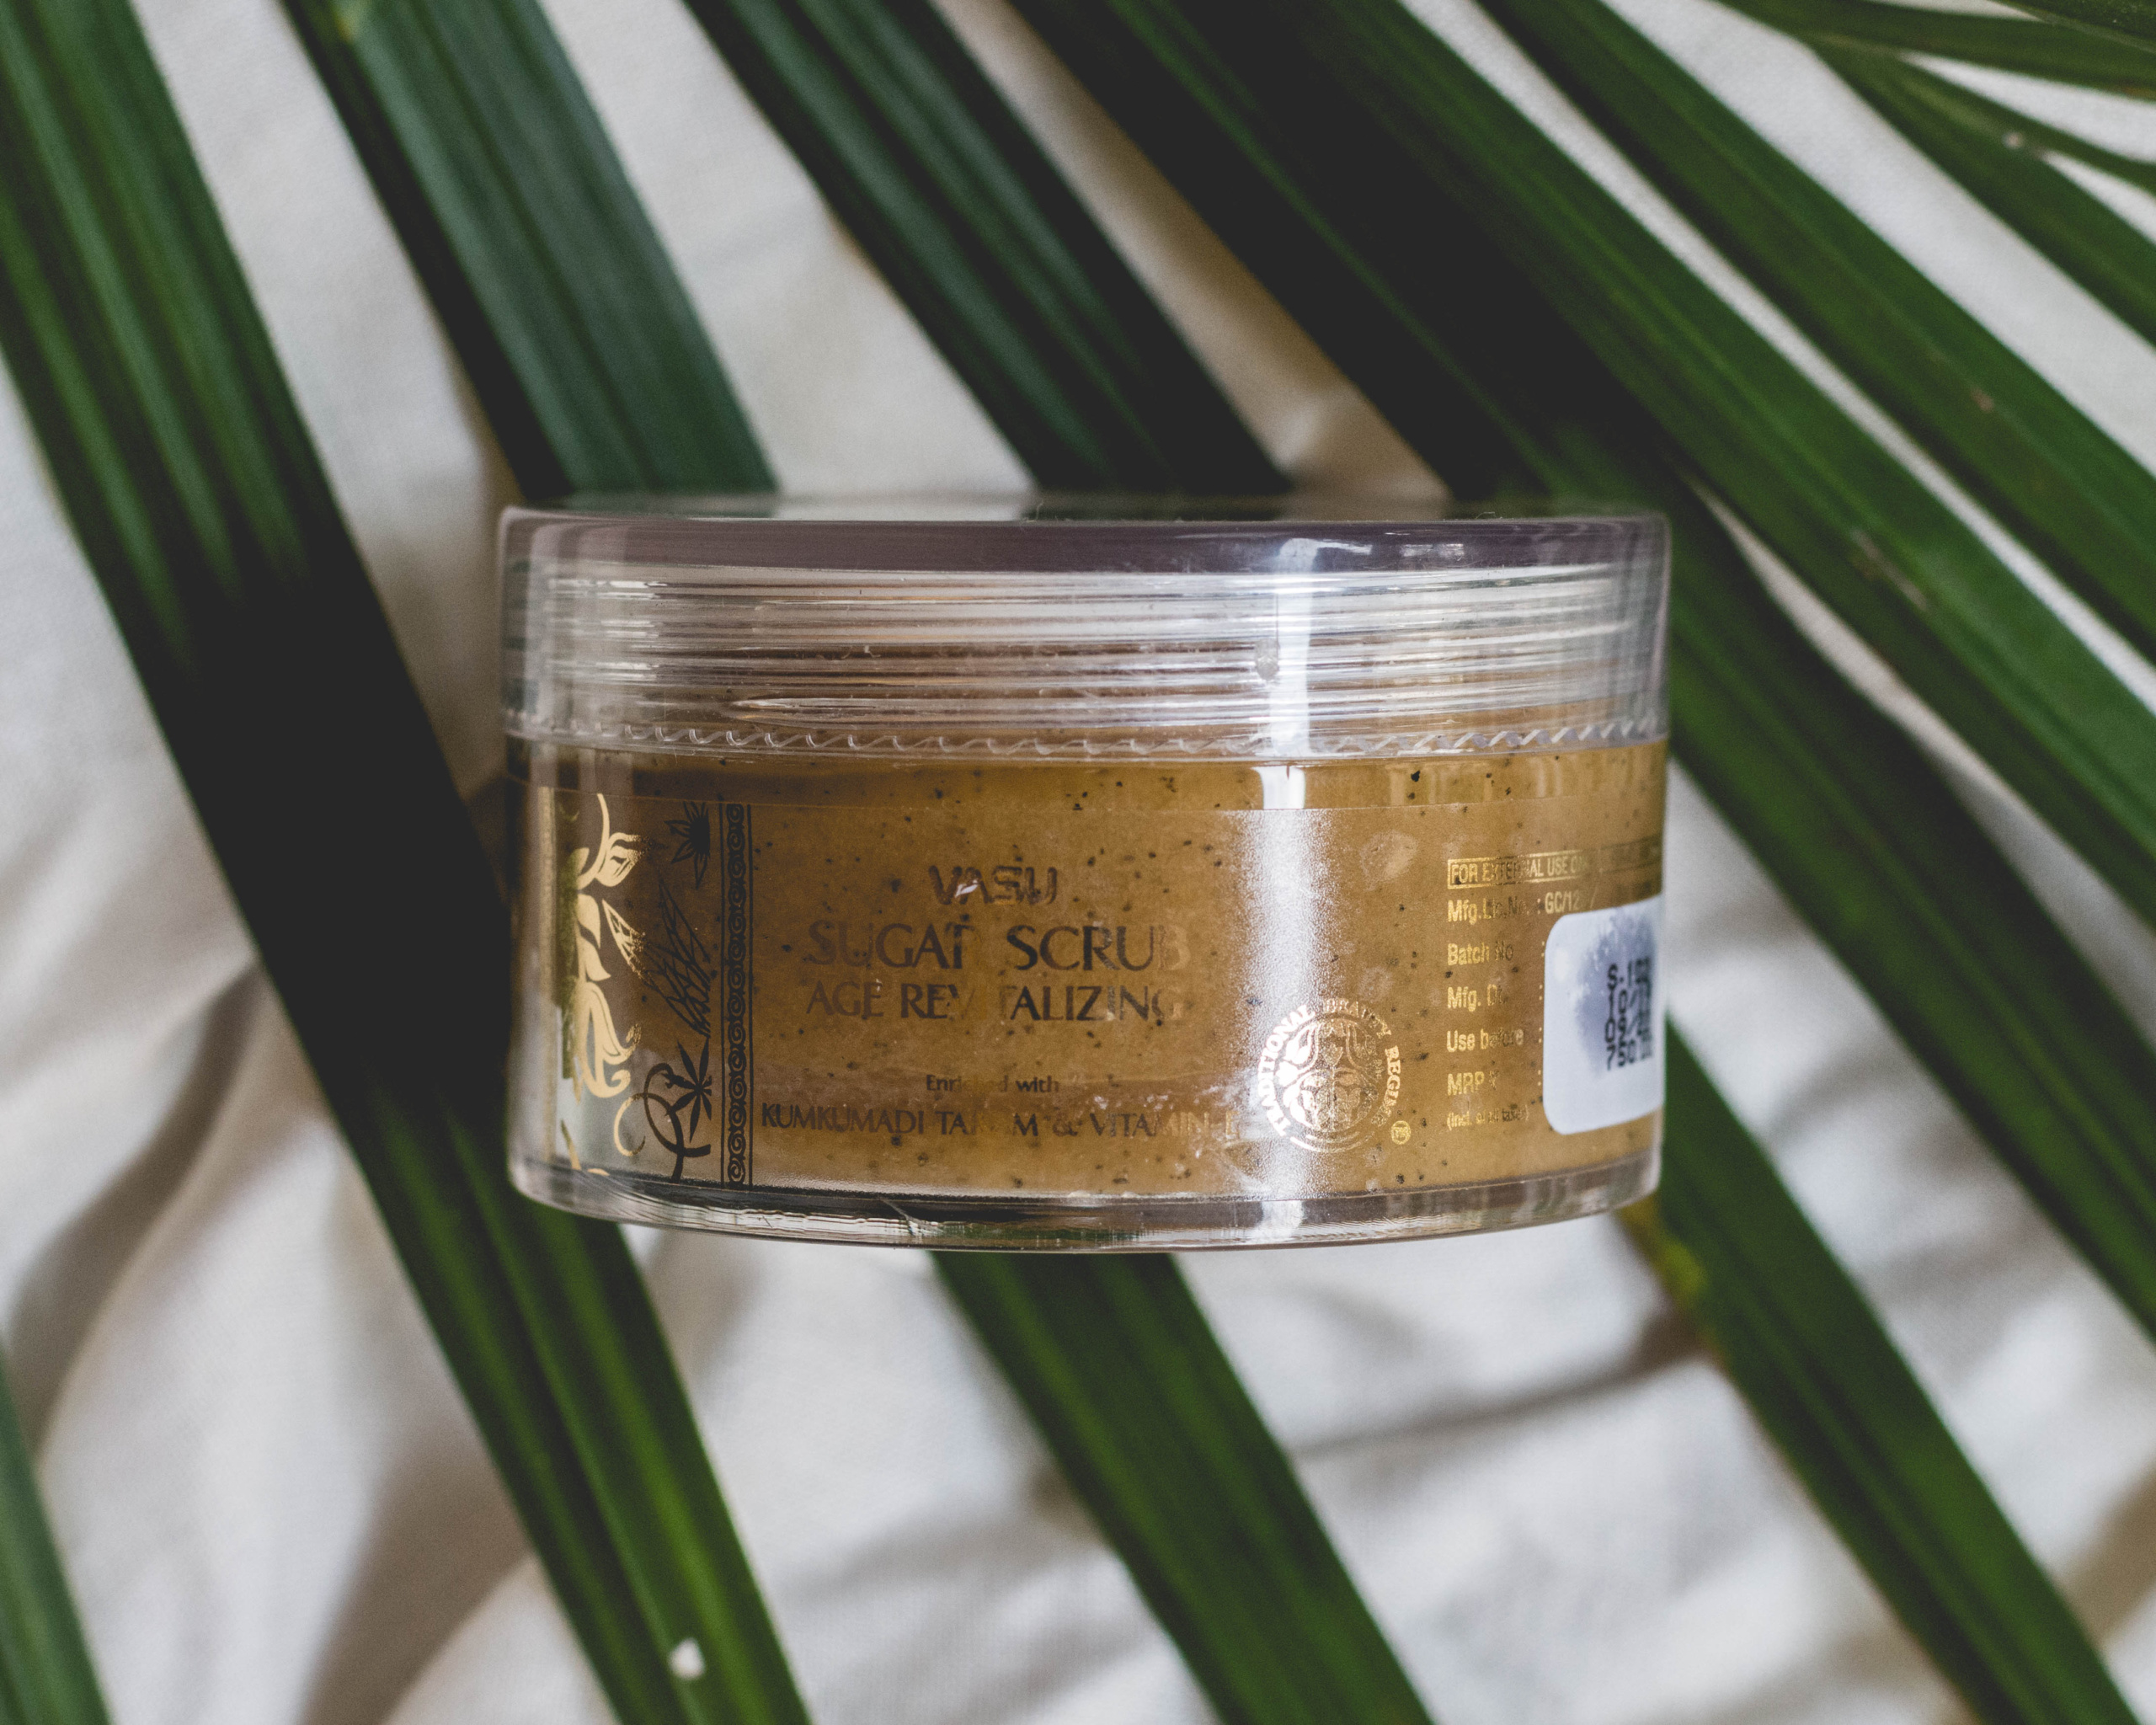 Vasu Kumkumadi Thailam Sugar Scrub Review | Cherry On Top